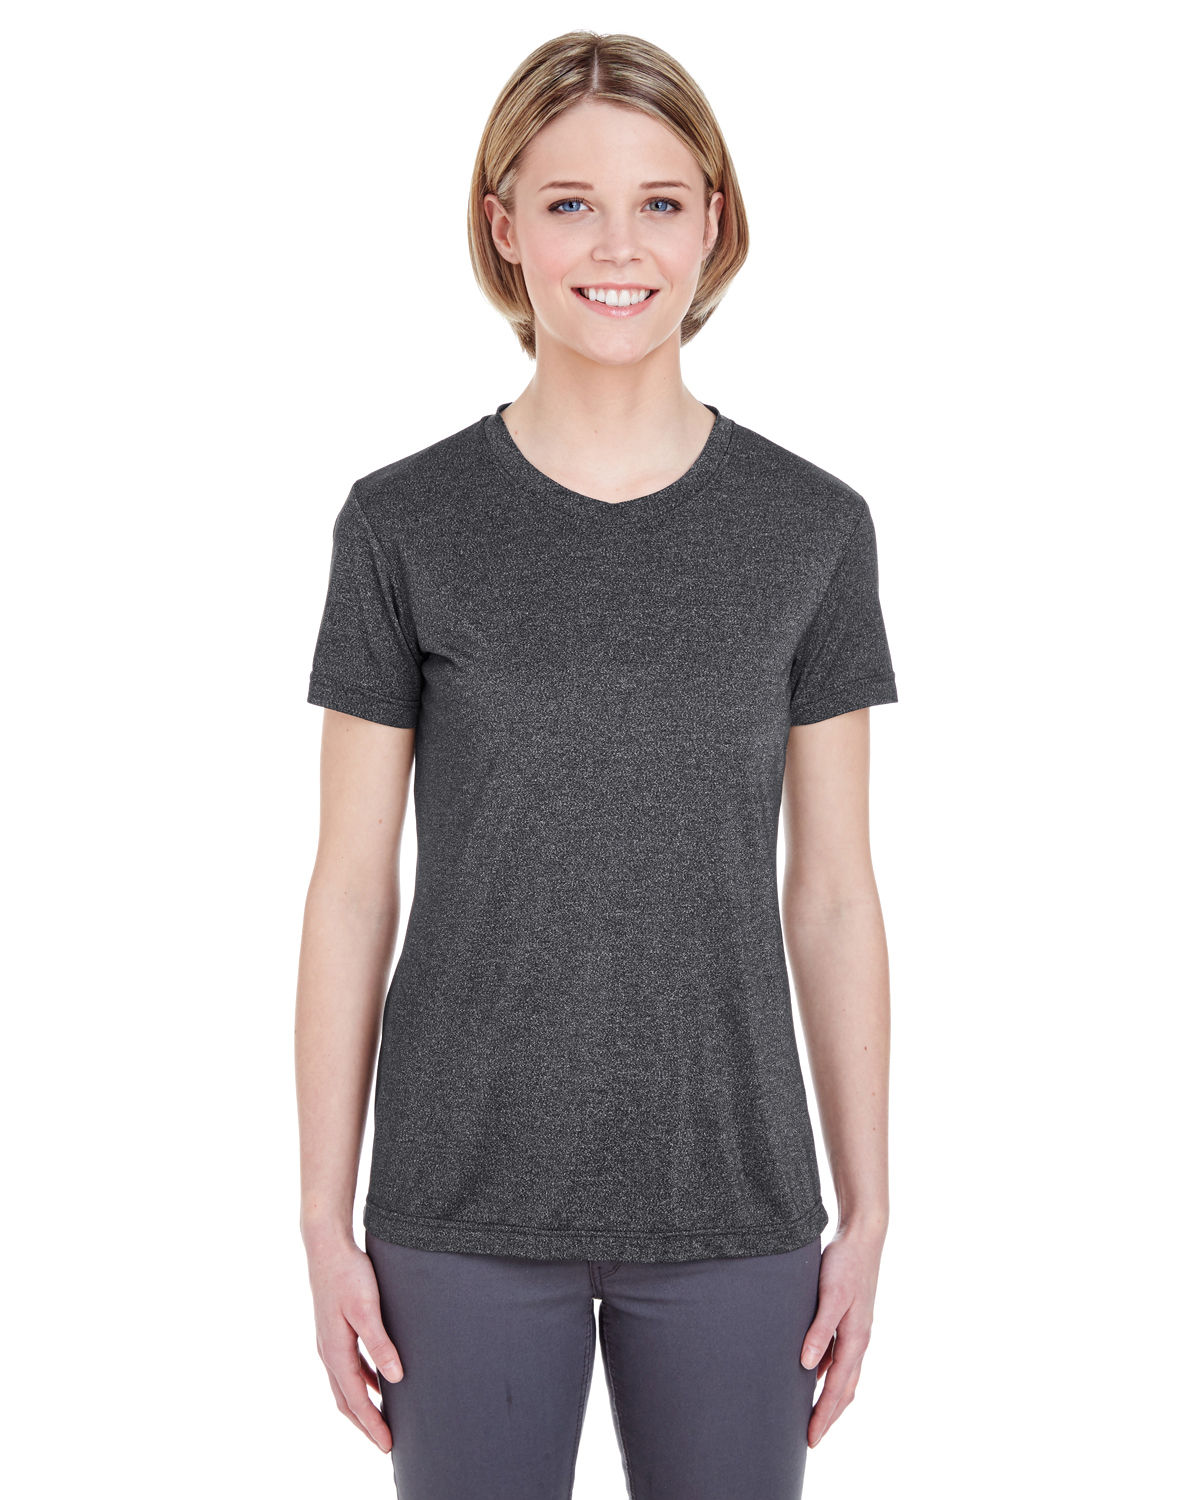 Ladies' Cool & Dry Heathered Performance T-Shirt